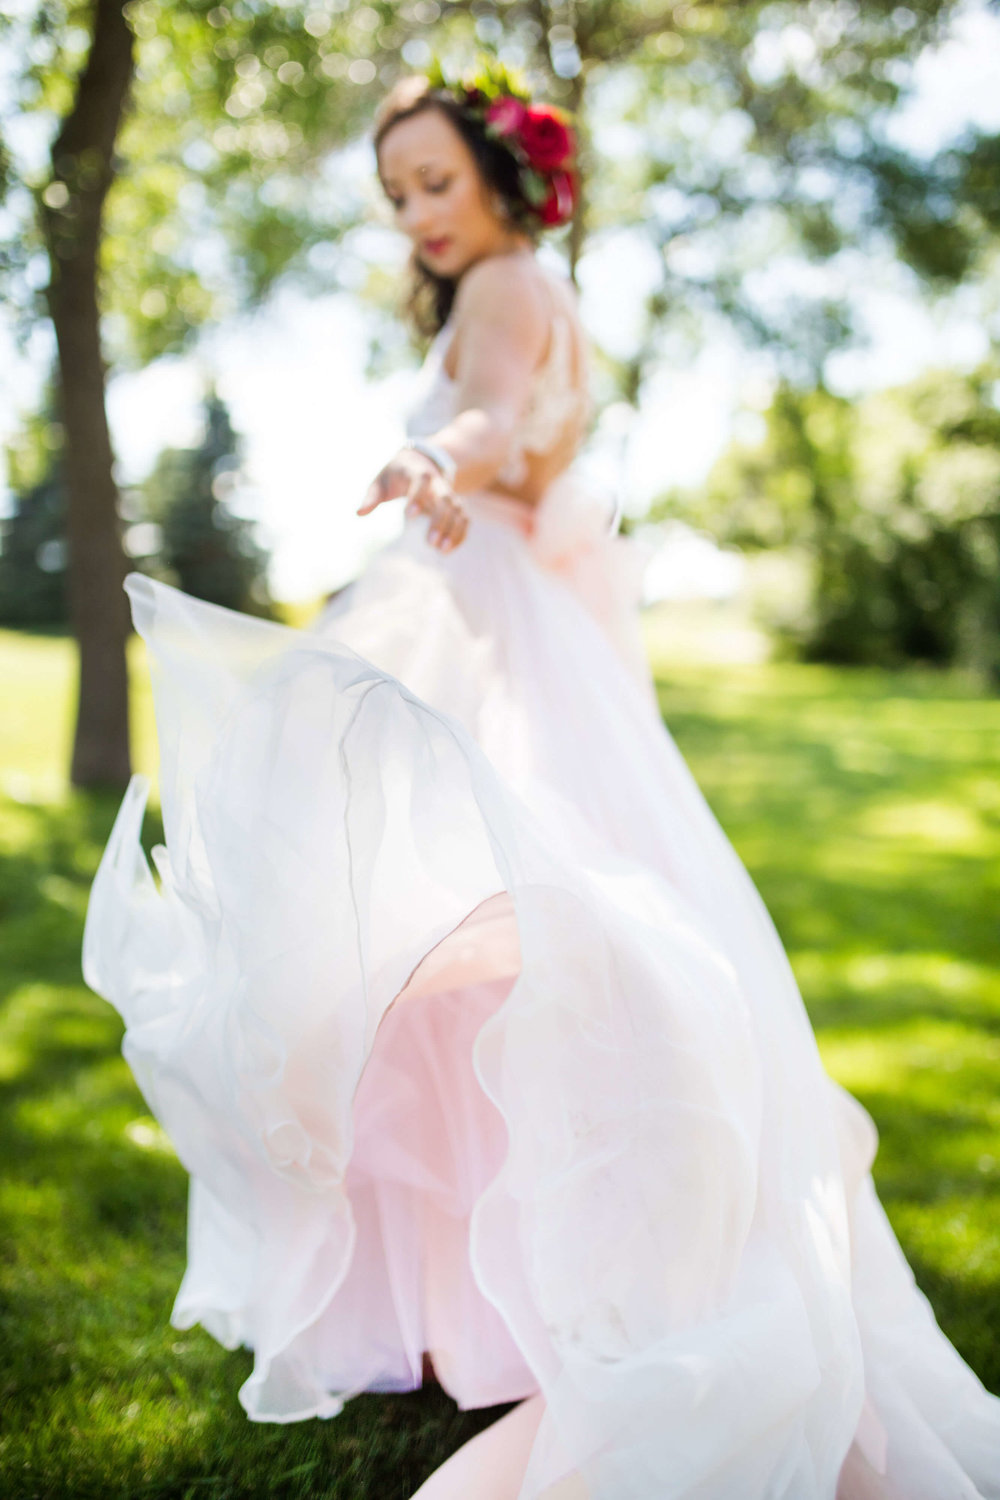 pink underlay wedding dress | Minnesota wedding photographer Studio KH wedding dress details | wedding blog | Sixpence Events 70 Ways to Photograph Your Wedding Dress.jpg